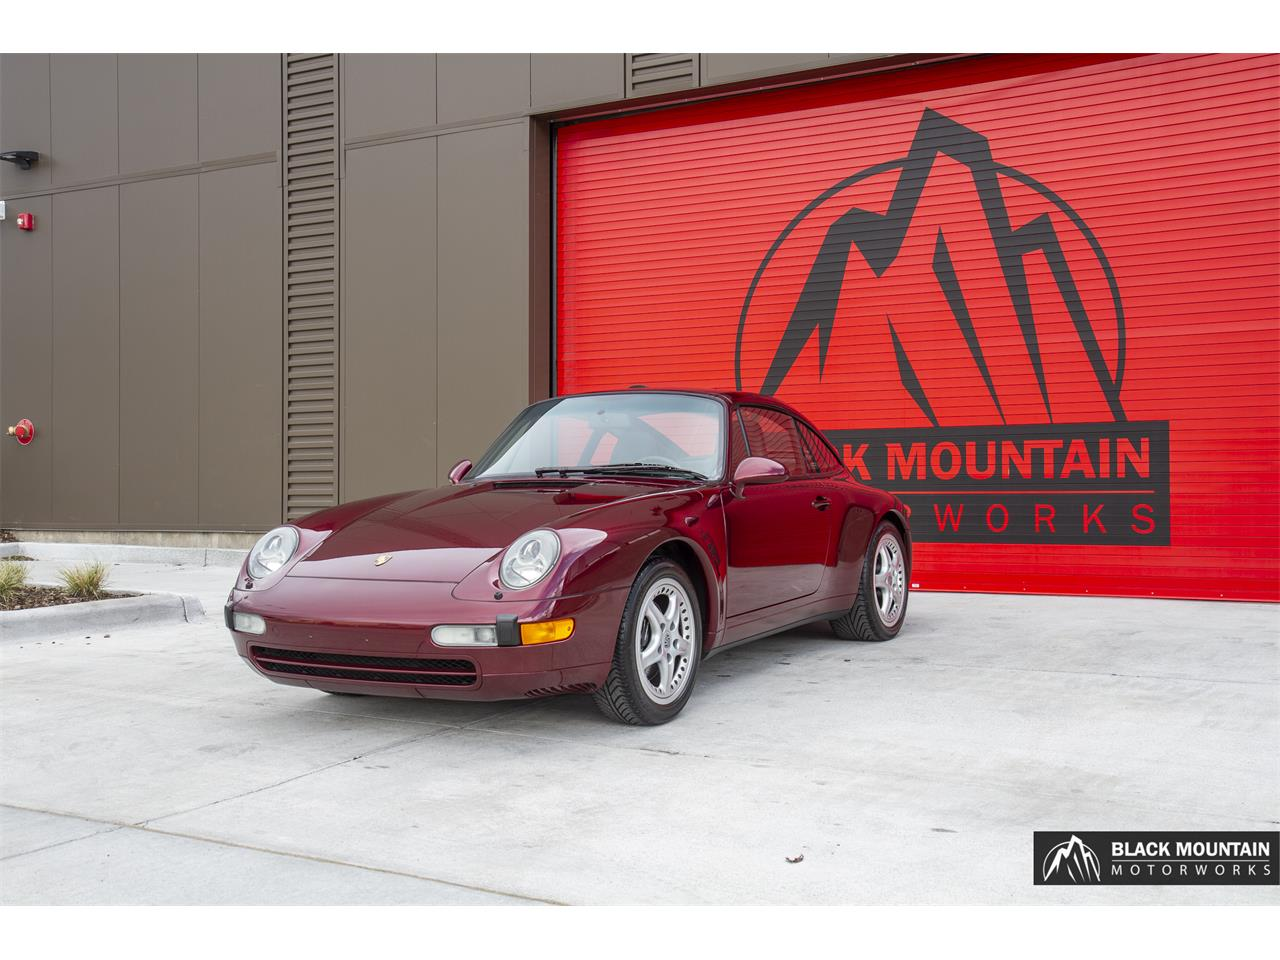 Large Picture of '97 Porsche 911 Carrera located in Denver Colorado - $69,000.00 Offered by a Private Seller - QN1Z